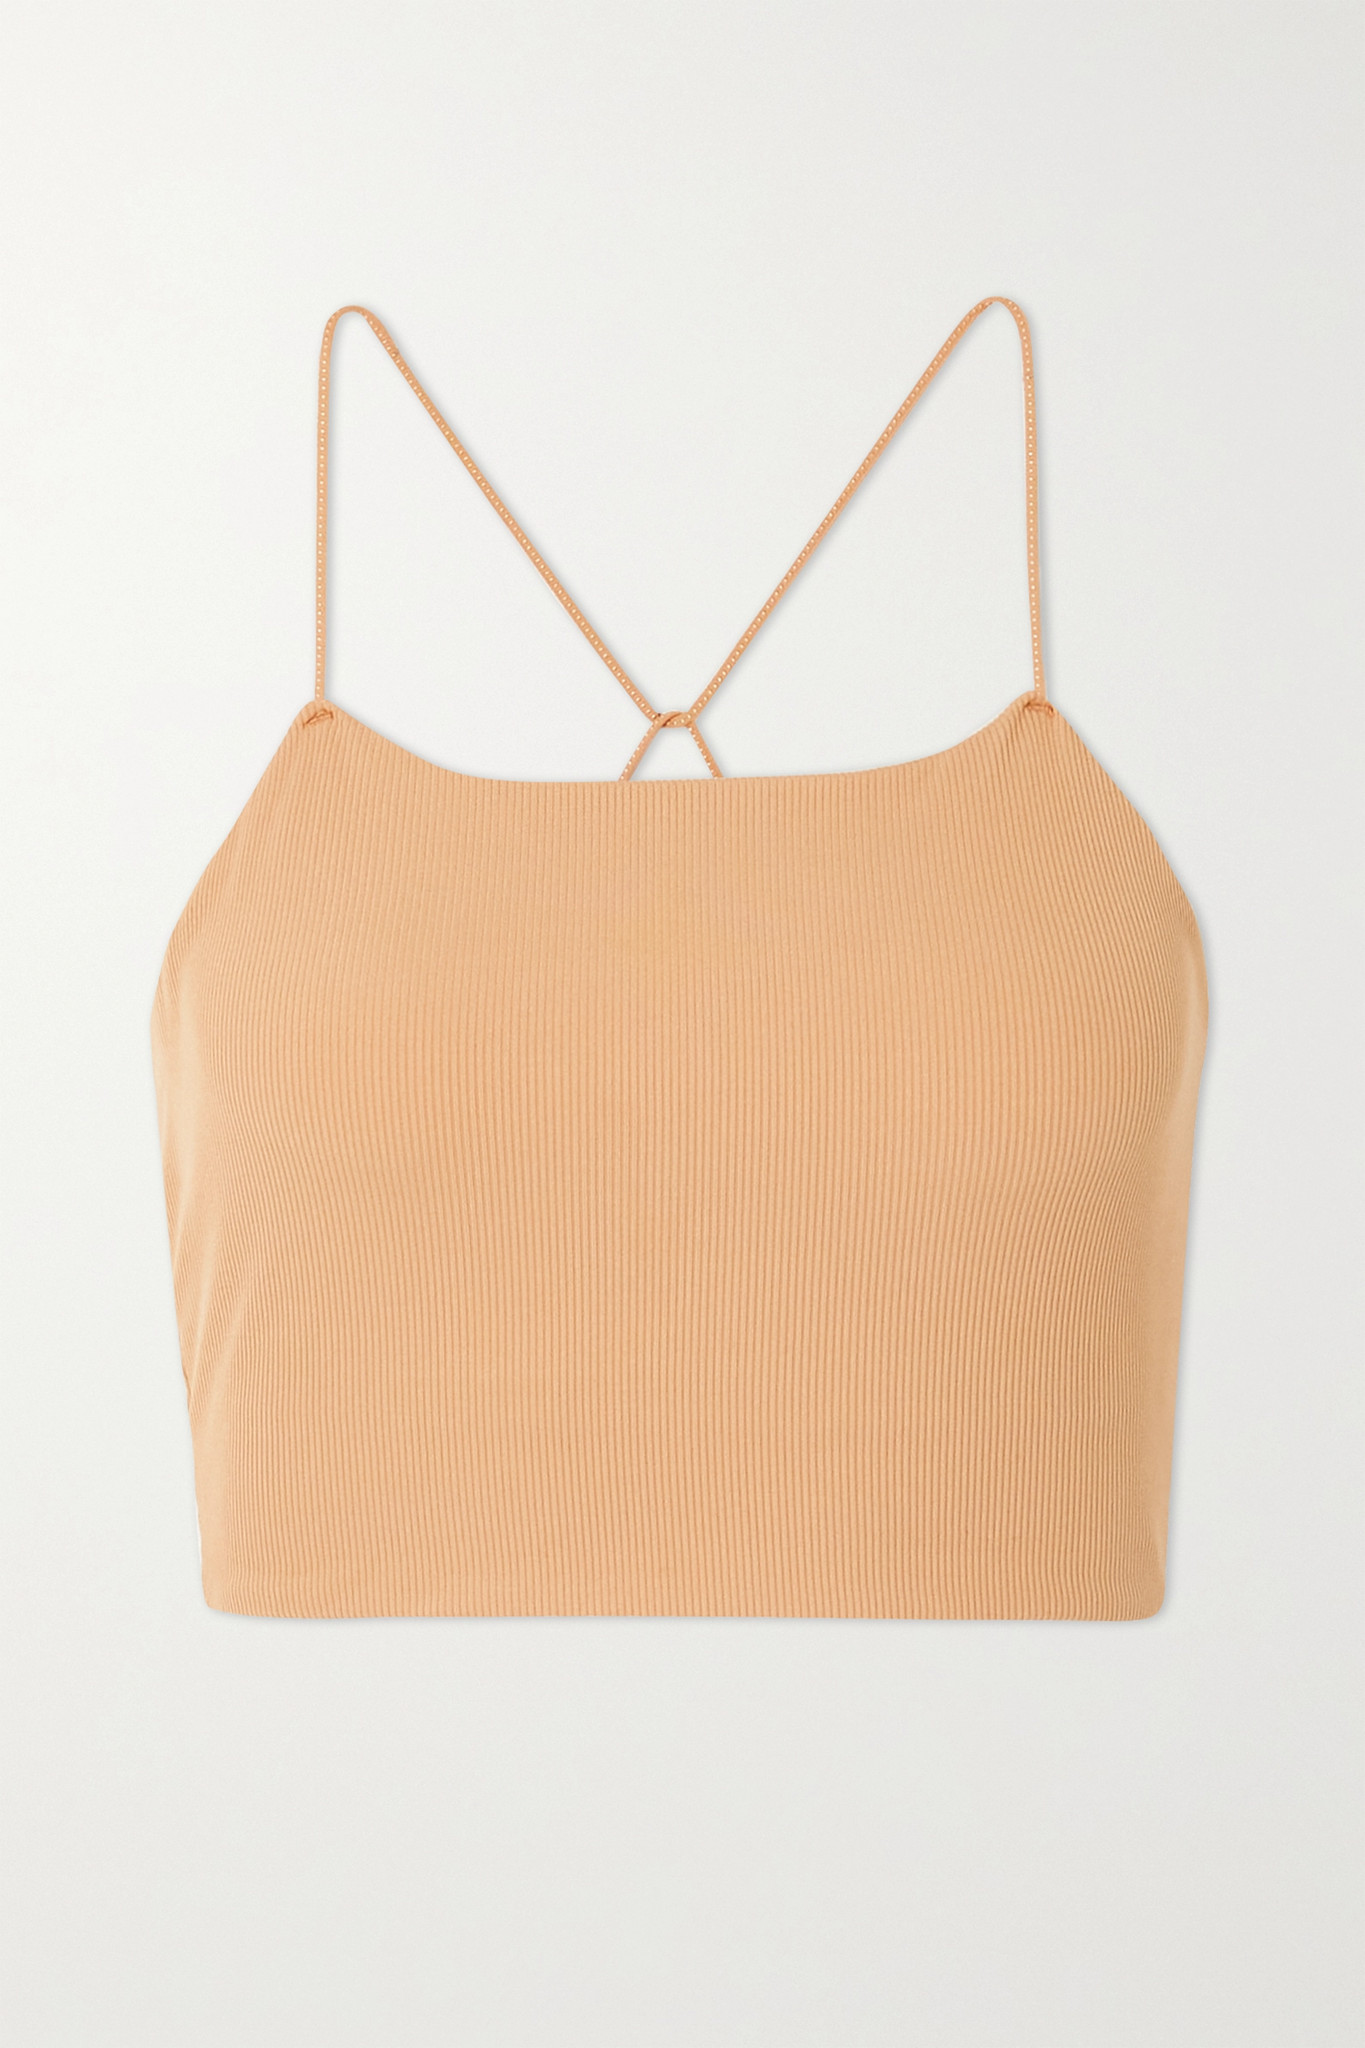 NIKE - Yoga Luxe Cropped Ribbed Infinalon Dri-fit Tank - Neutrals - medium